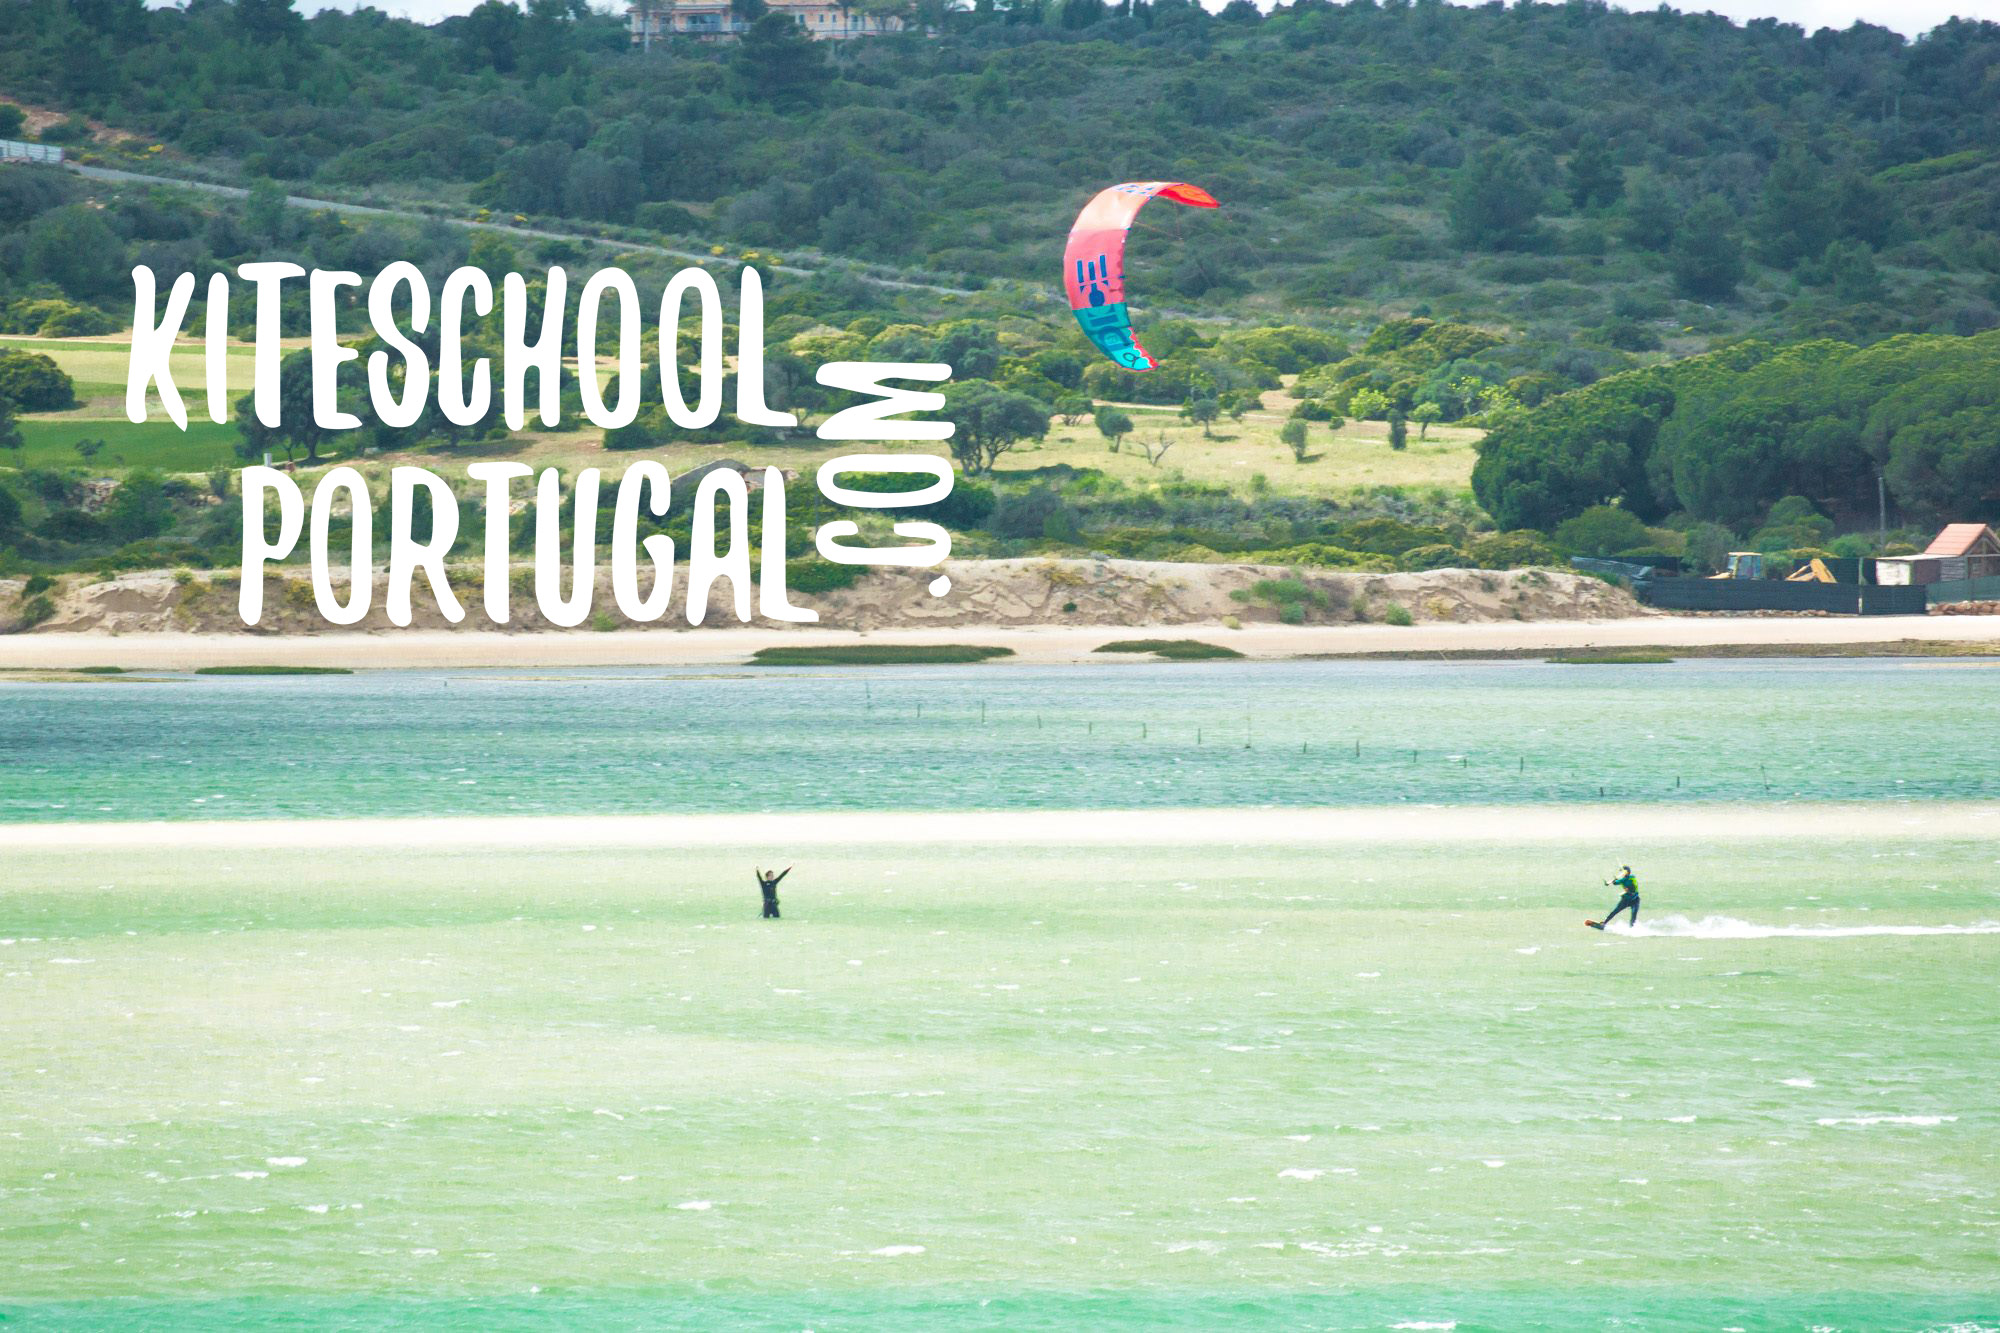 Kiteschool Portugal - To make you ride is our mission